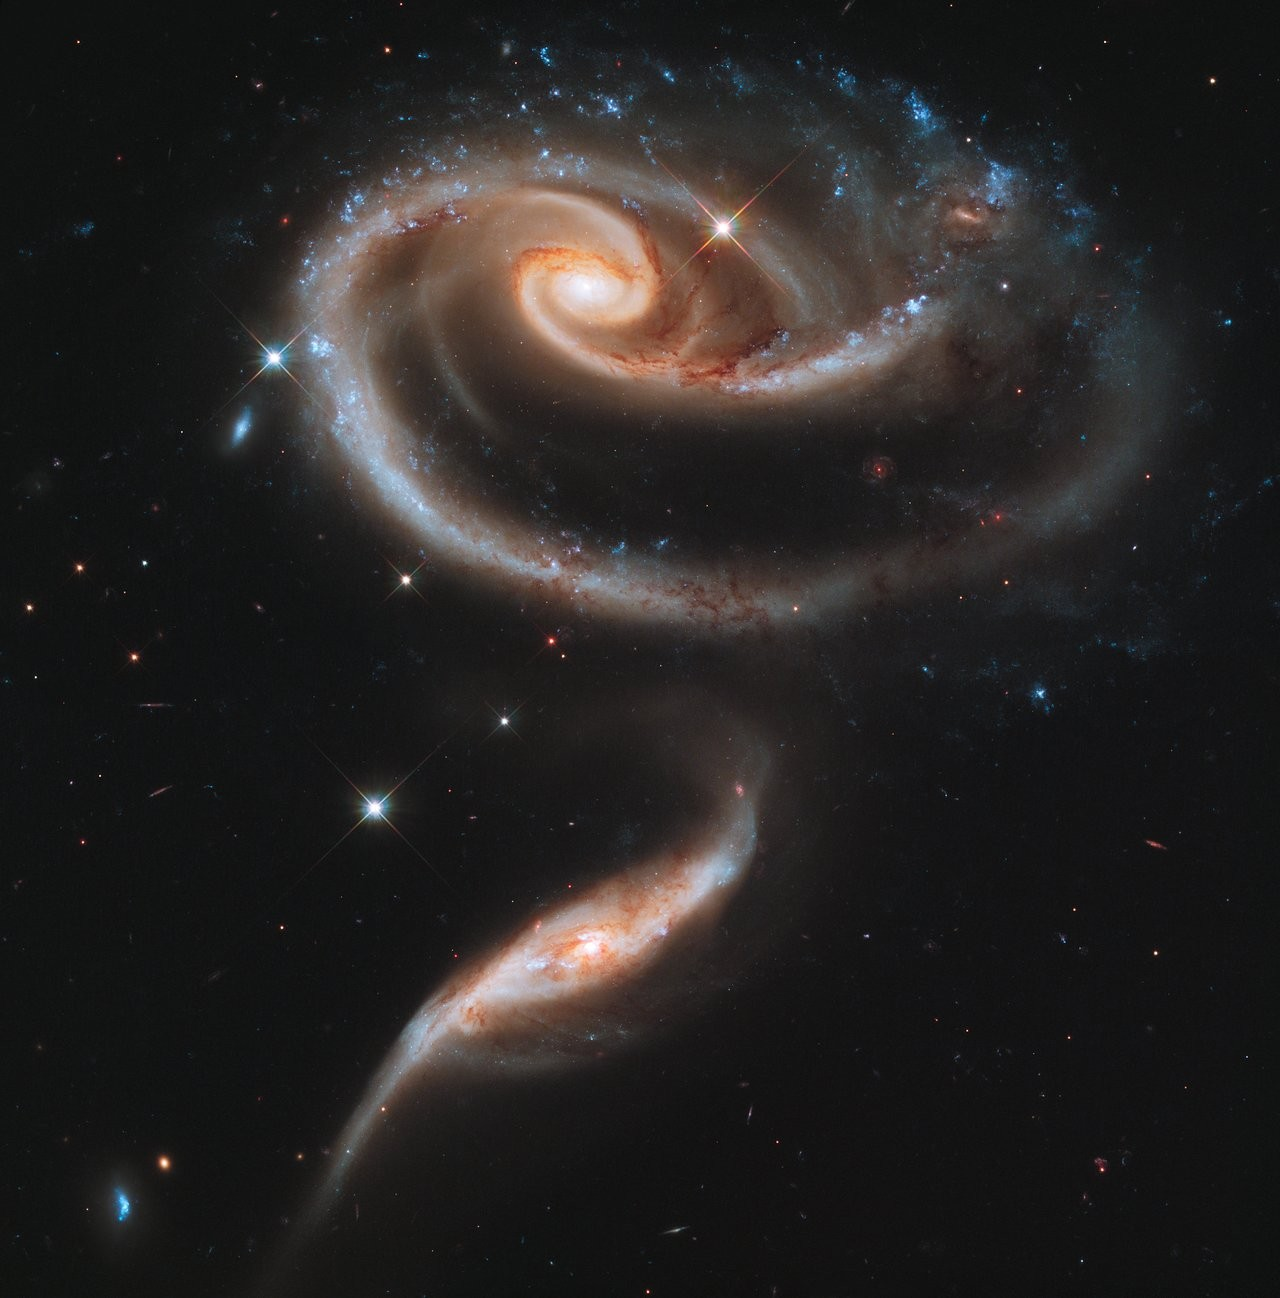 This image of a pair of interacting galaxies called Arp 273 was released to celebrate the 21st anniversary of the launch of the NASA/ESA Hubble Space Telescope. The distorted shape of the larger of the two galaxies shows signs of tidal interactions with the smaller of the two. It is thought that the smaller galaxy has actually passed through the larger one.